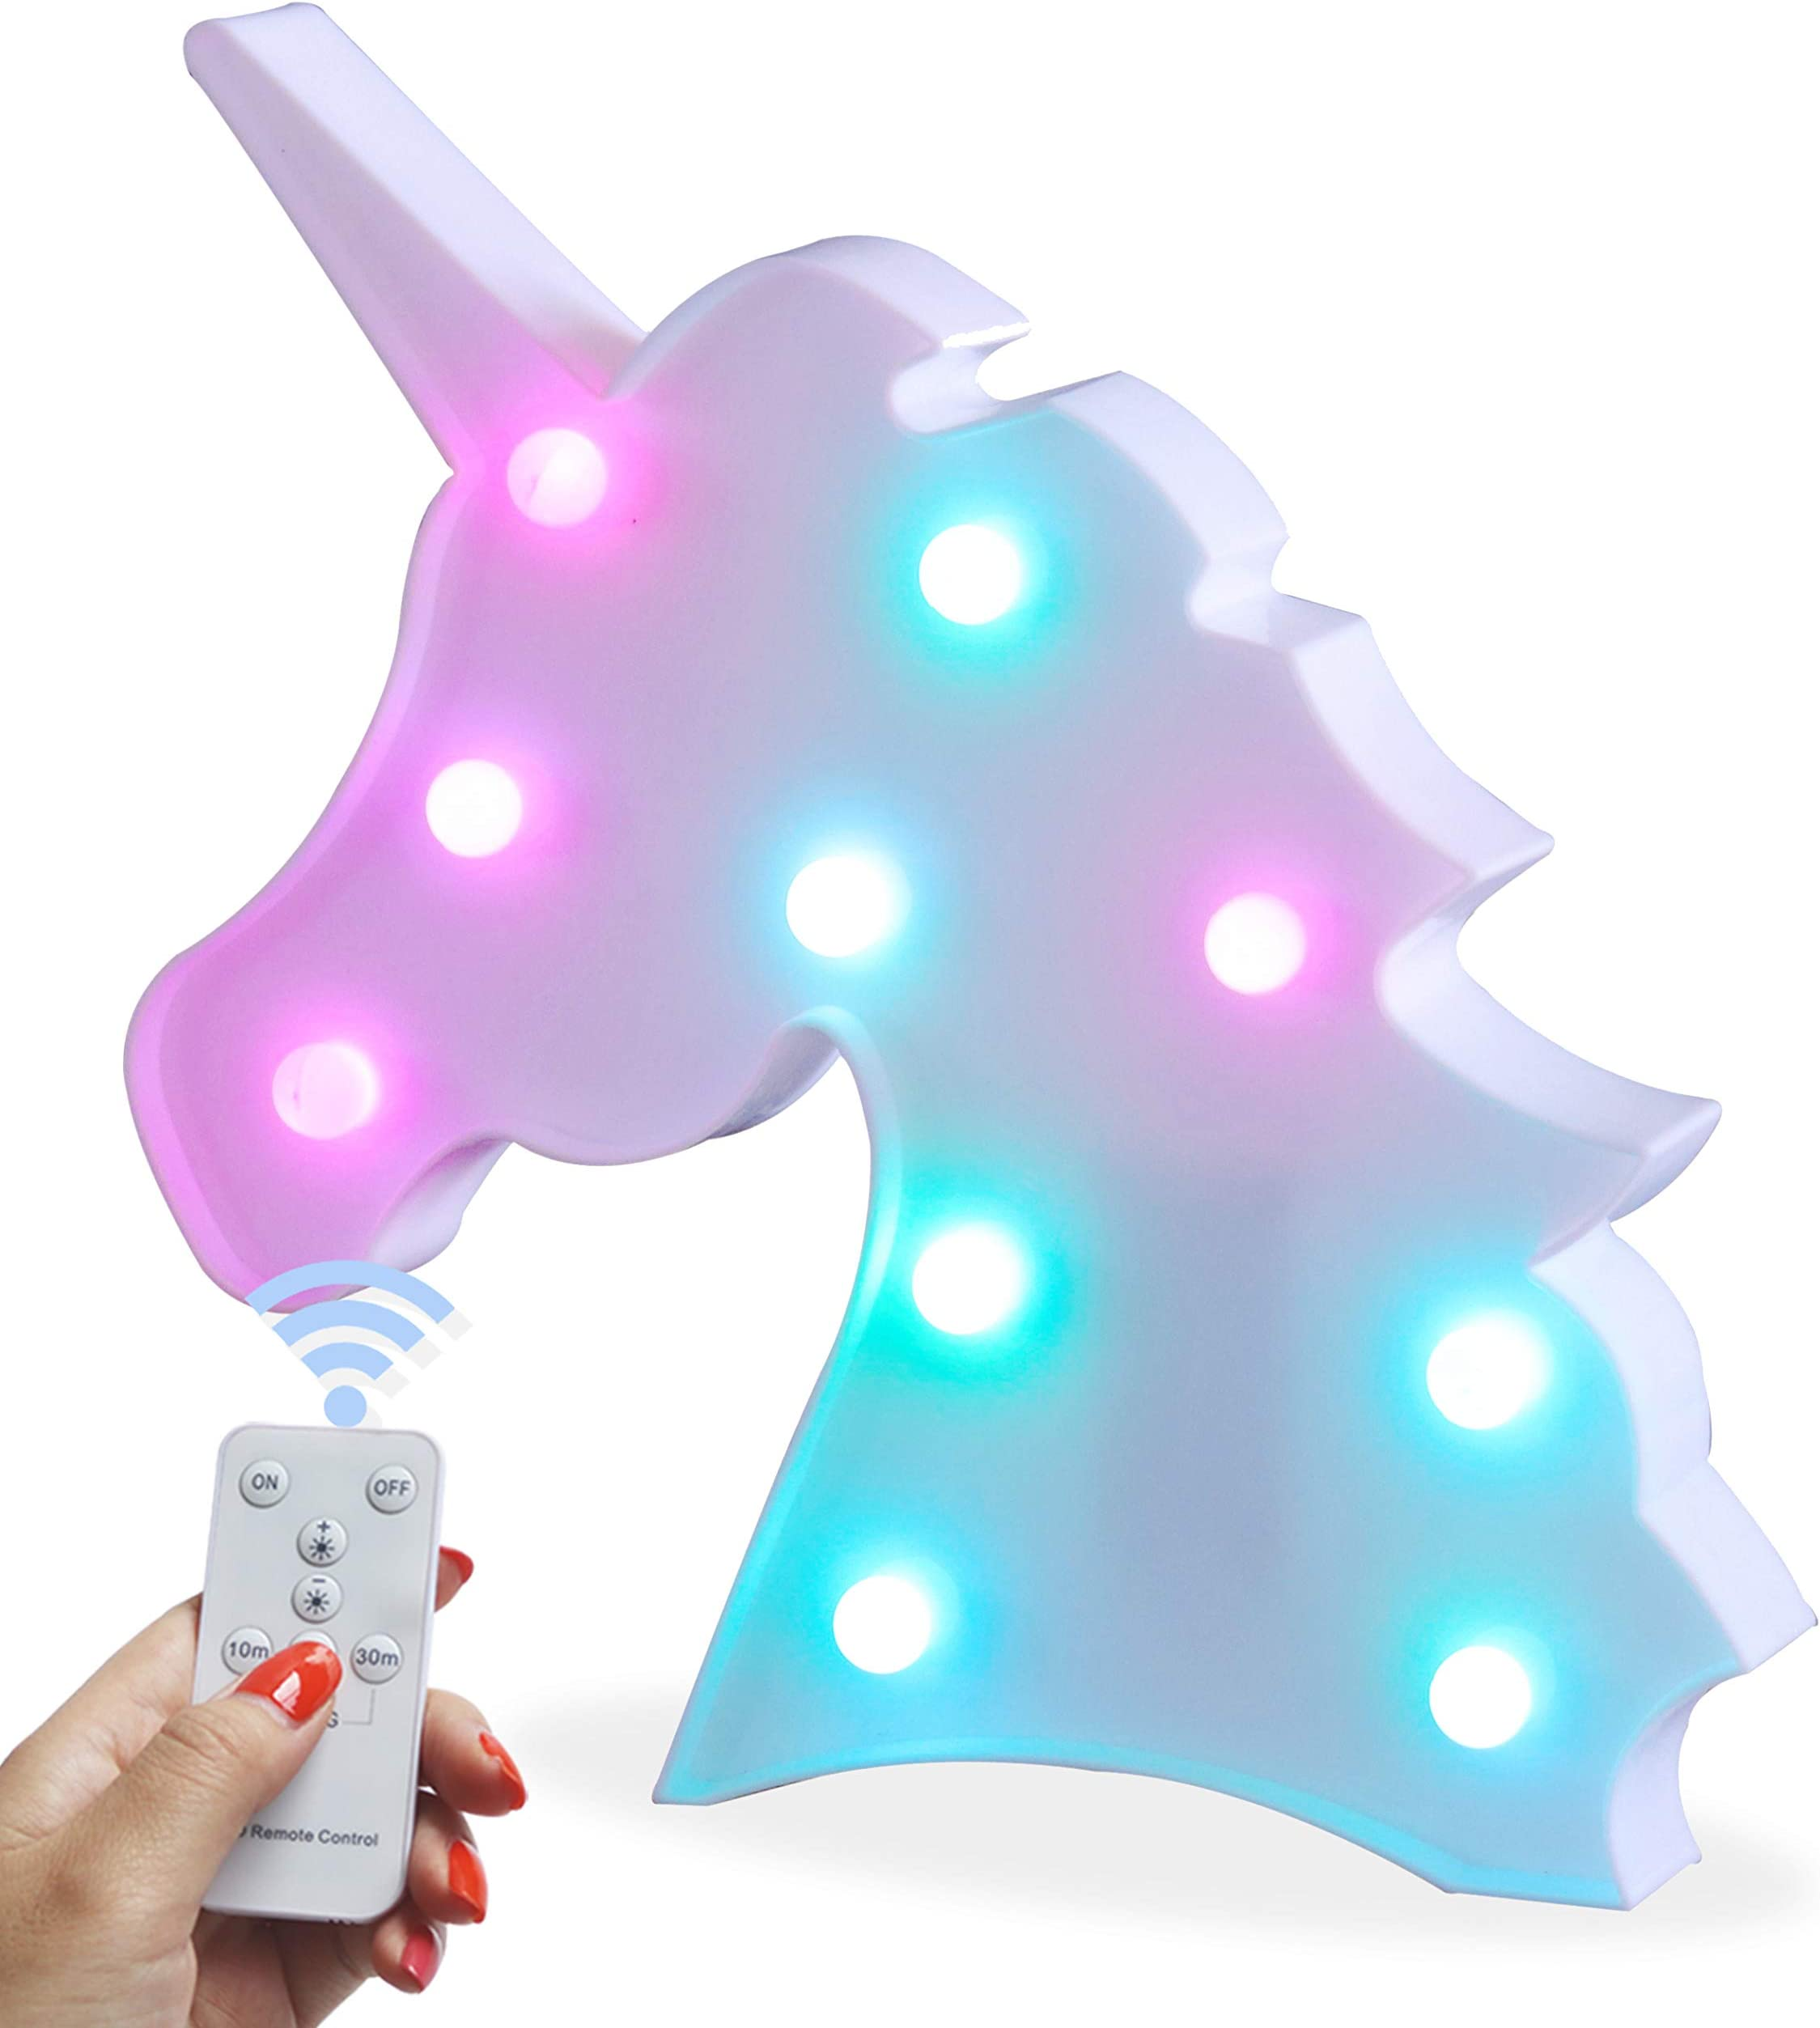 Colorful Unicorn LED Light, Battery Operated Night Light with Remote, Decorative Color Changing Marquee Signs for Kids' Room, Bedroom, Gift, Party, Christmas, Home Decorations (Colorful Unicorn)